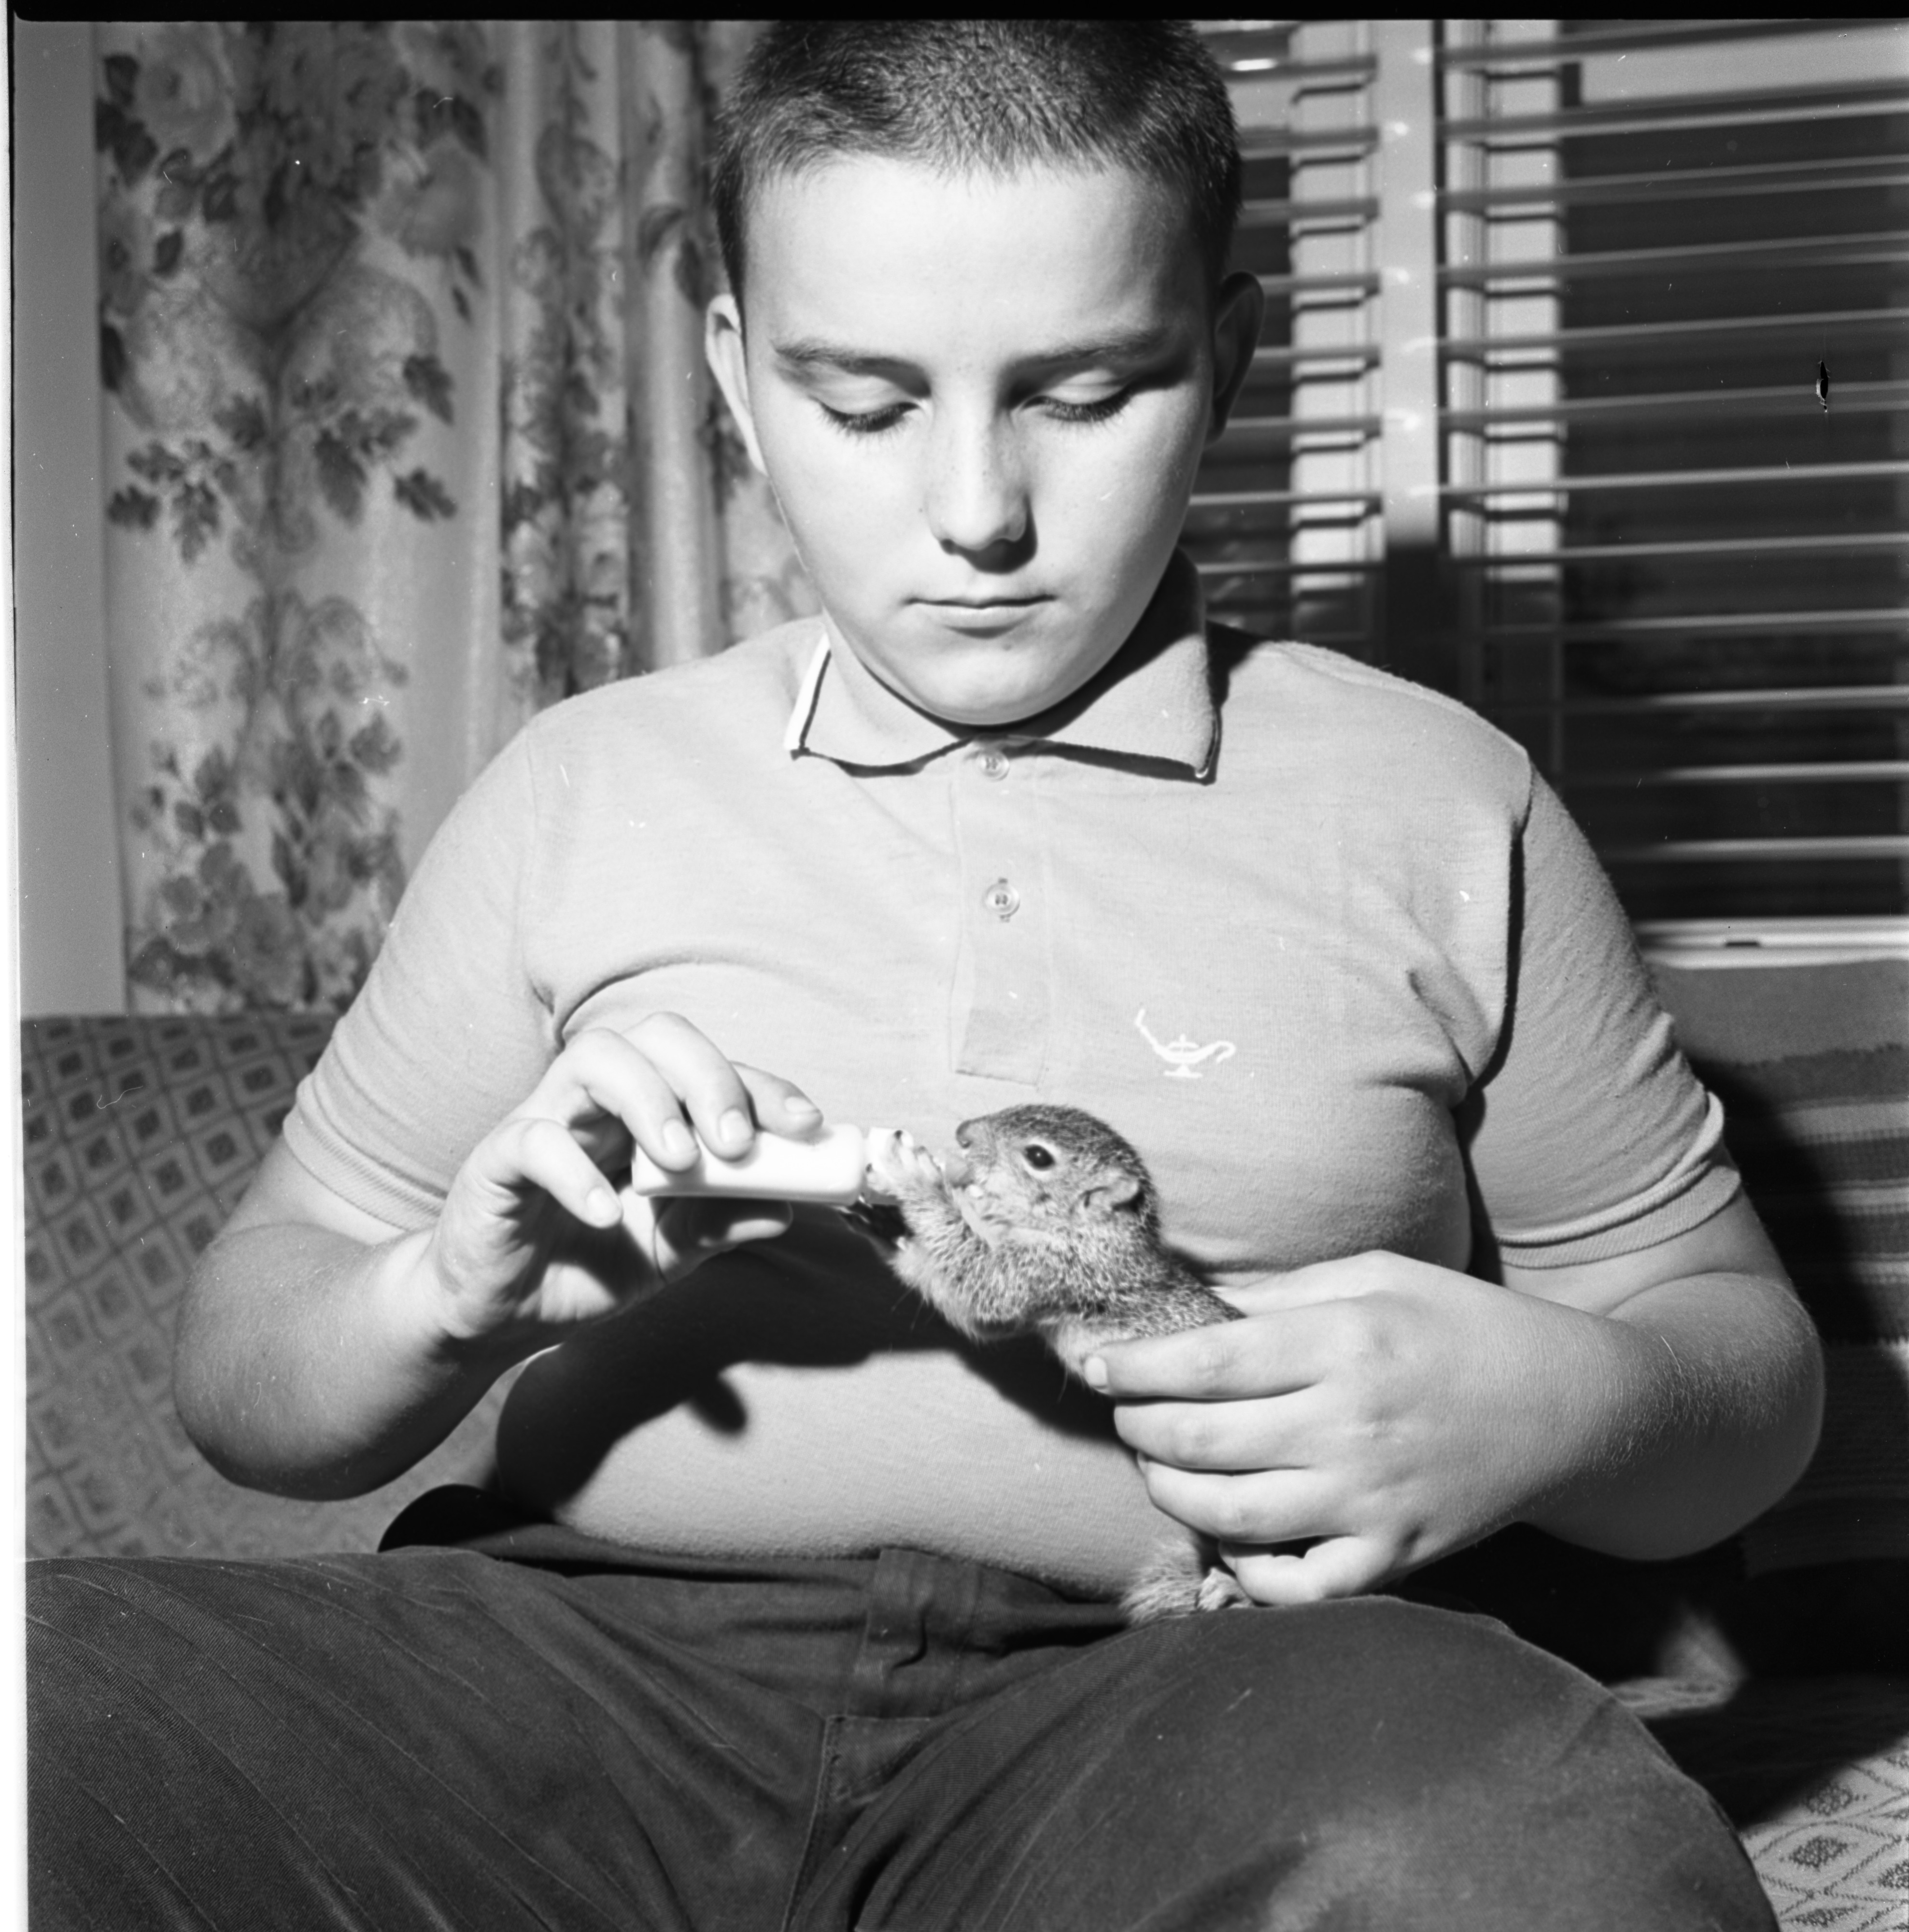 Kenneth Hoyt With Baby Squirrel, September 1964 image